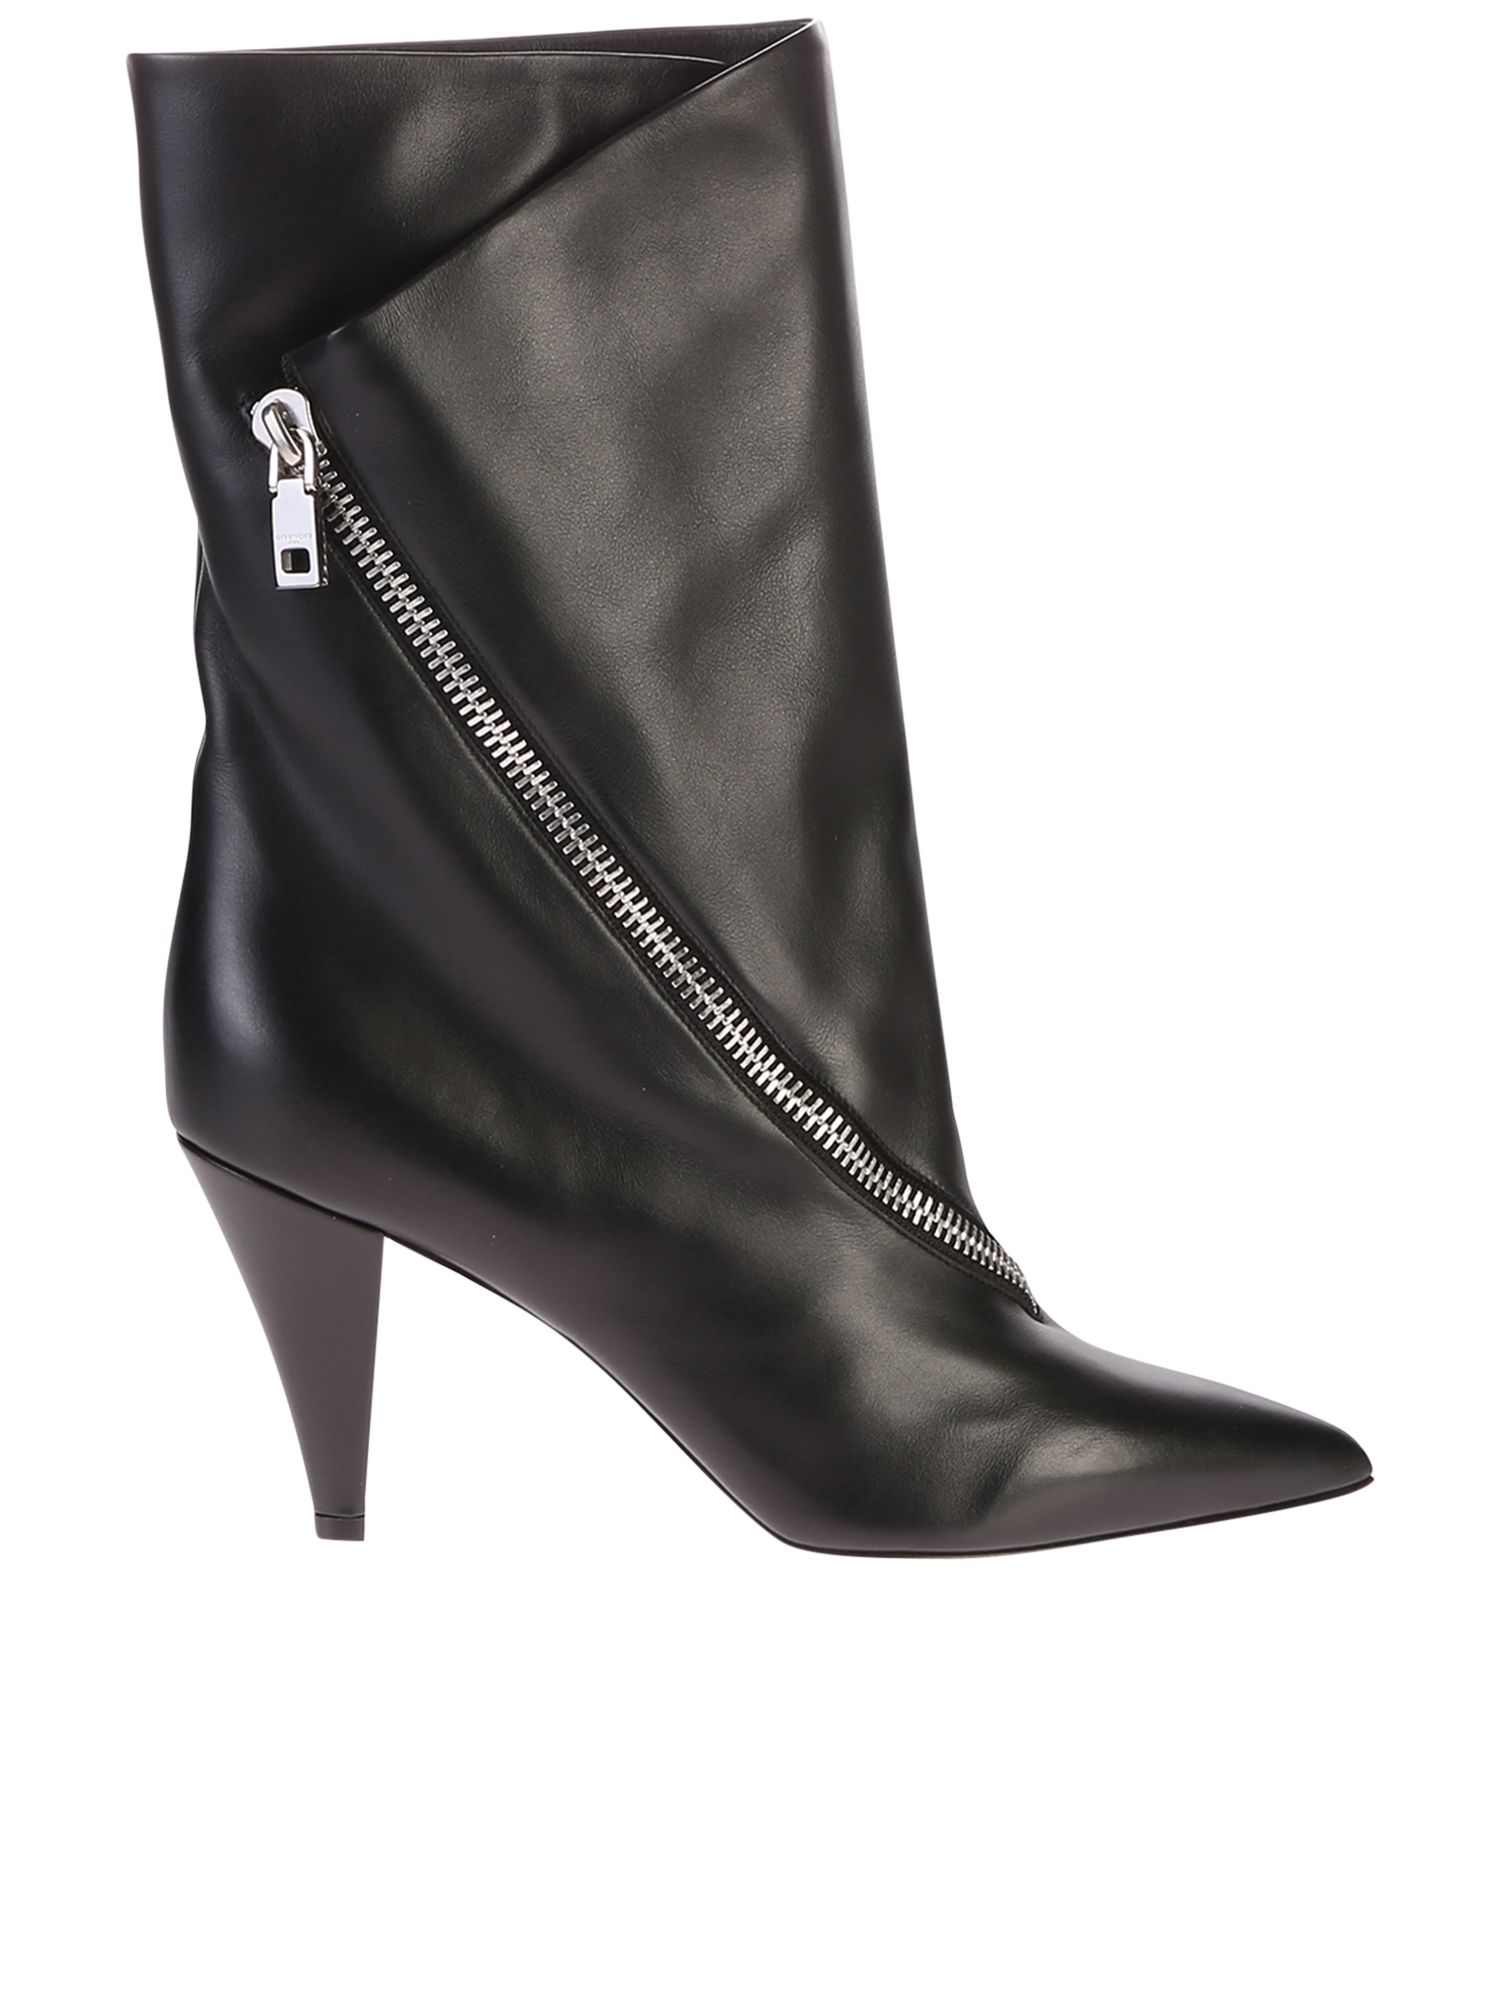 cc42628b2b00 Givenchy Black Zipped Boots - Black ...